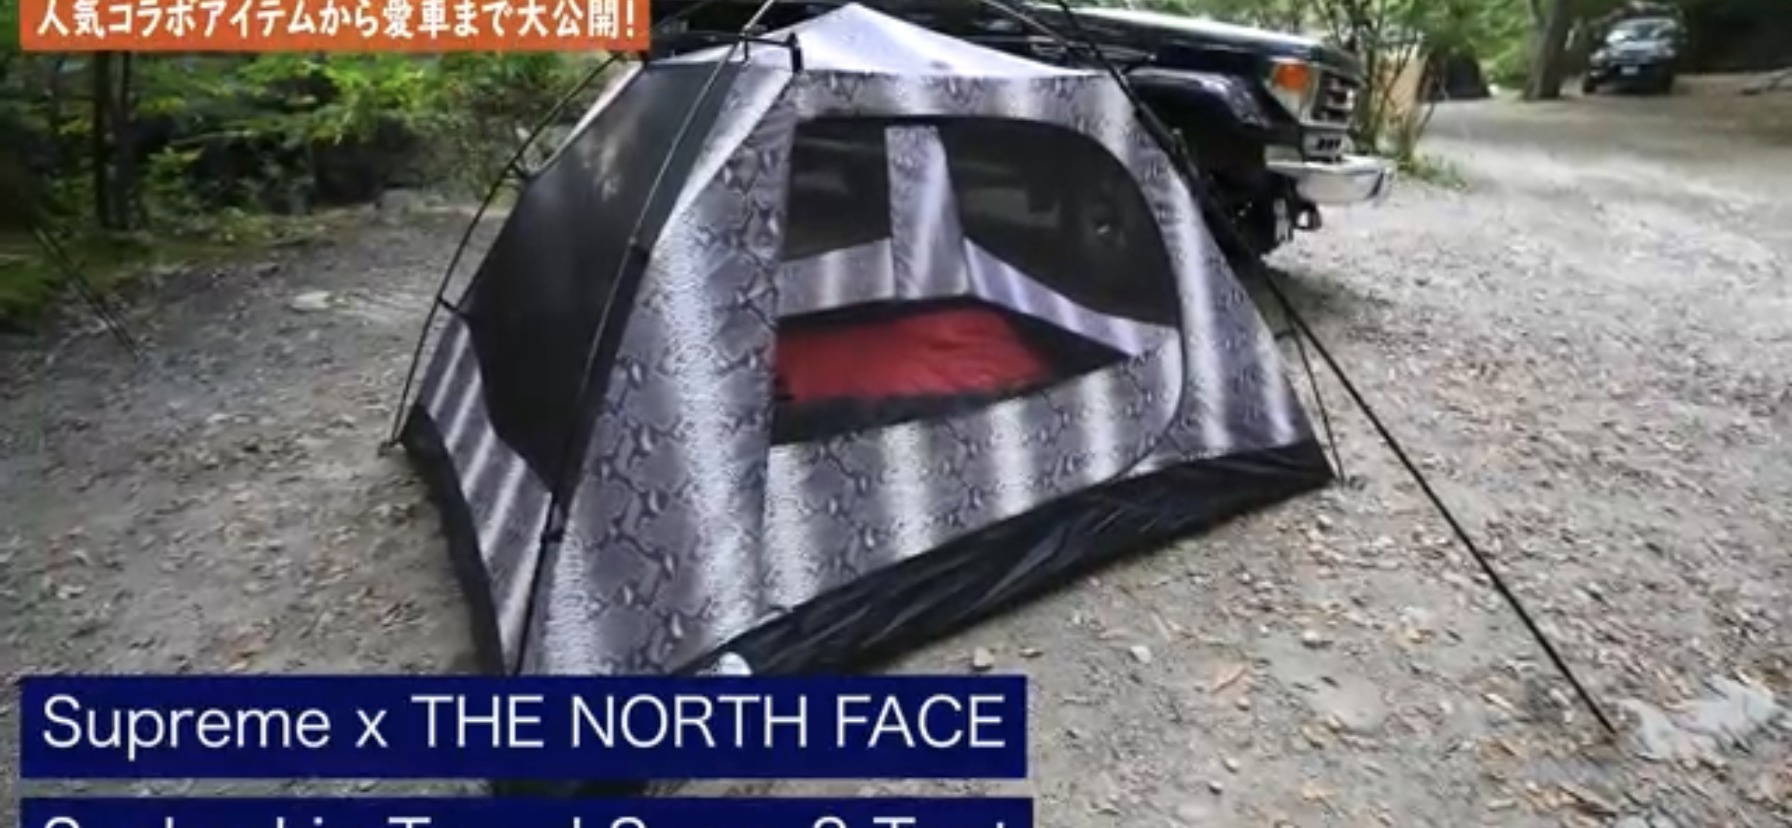 テント:【Supreme×THE NORTH FACE】 Snakeskin Seam 3 Tent